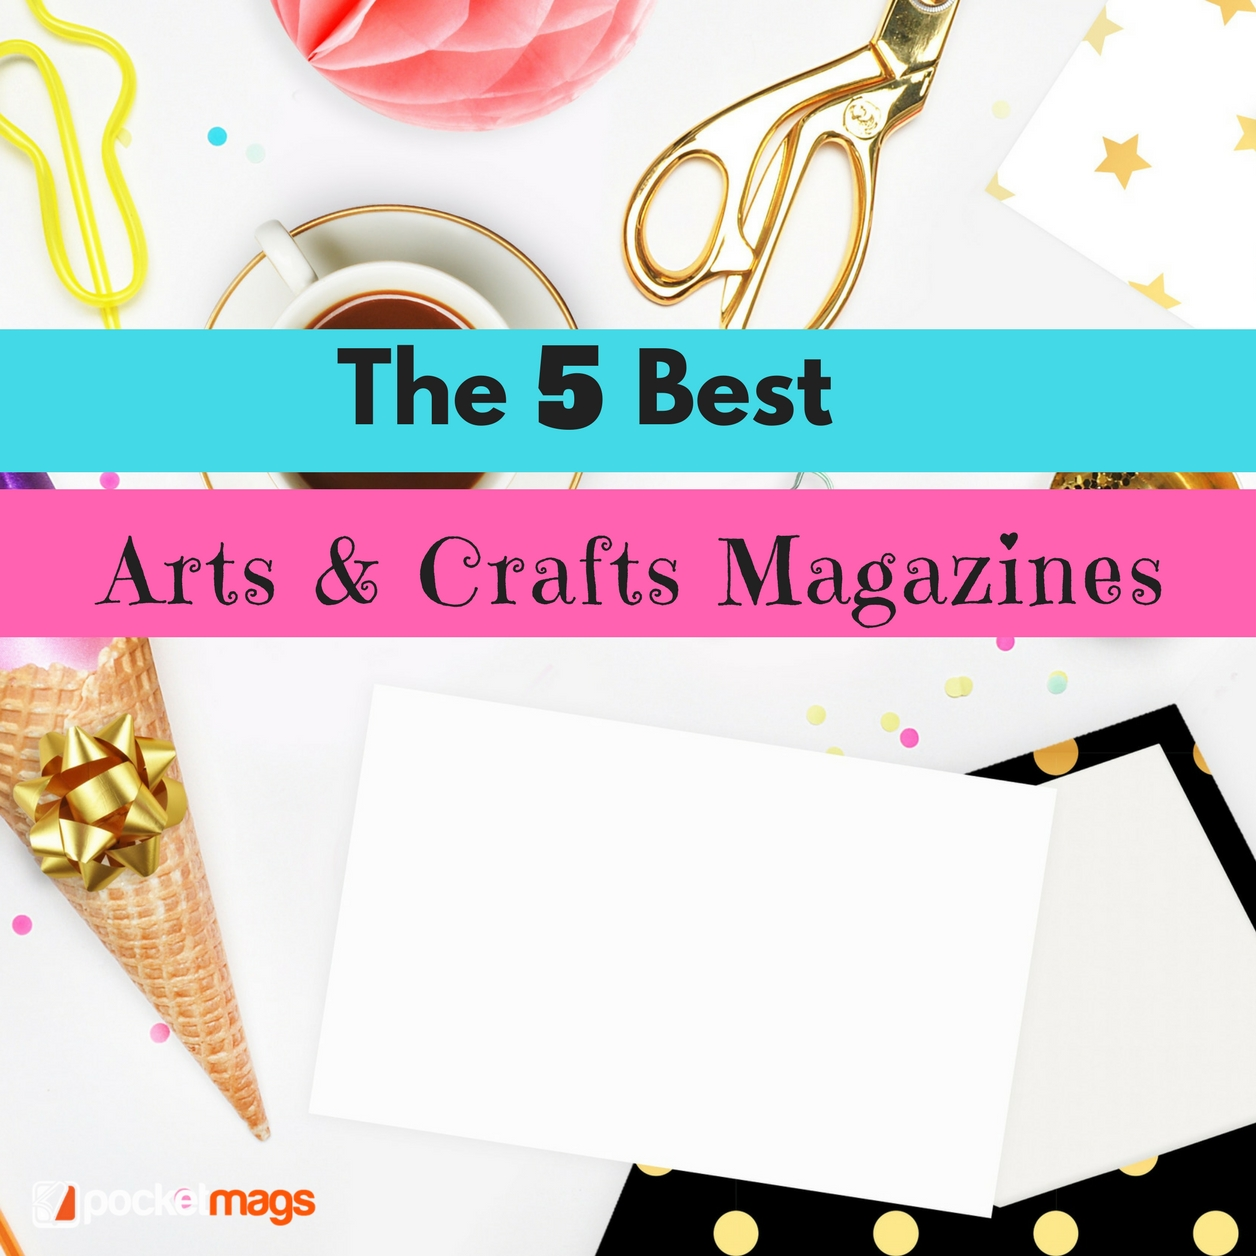 The 5 Best Arts & Crafts Magazines